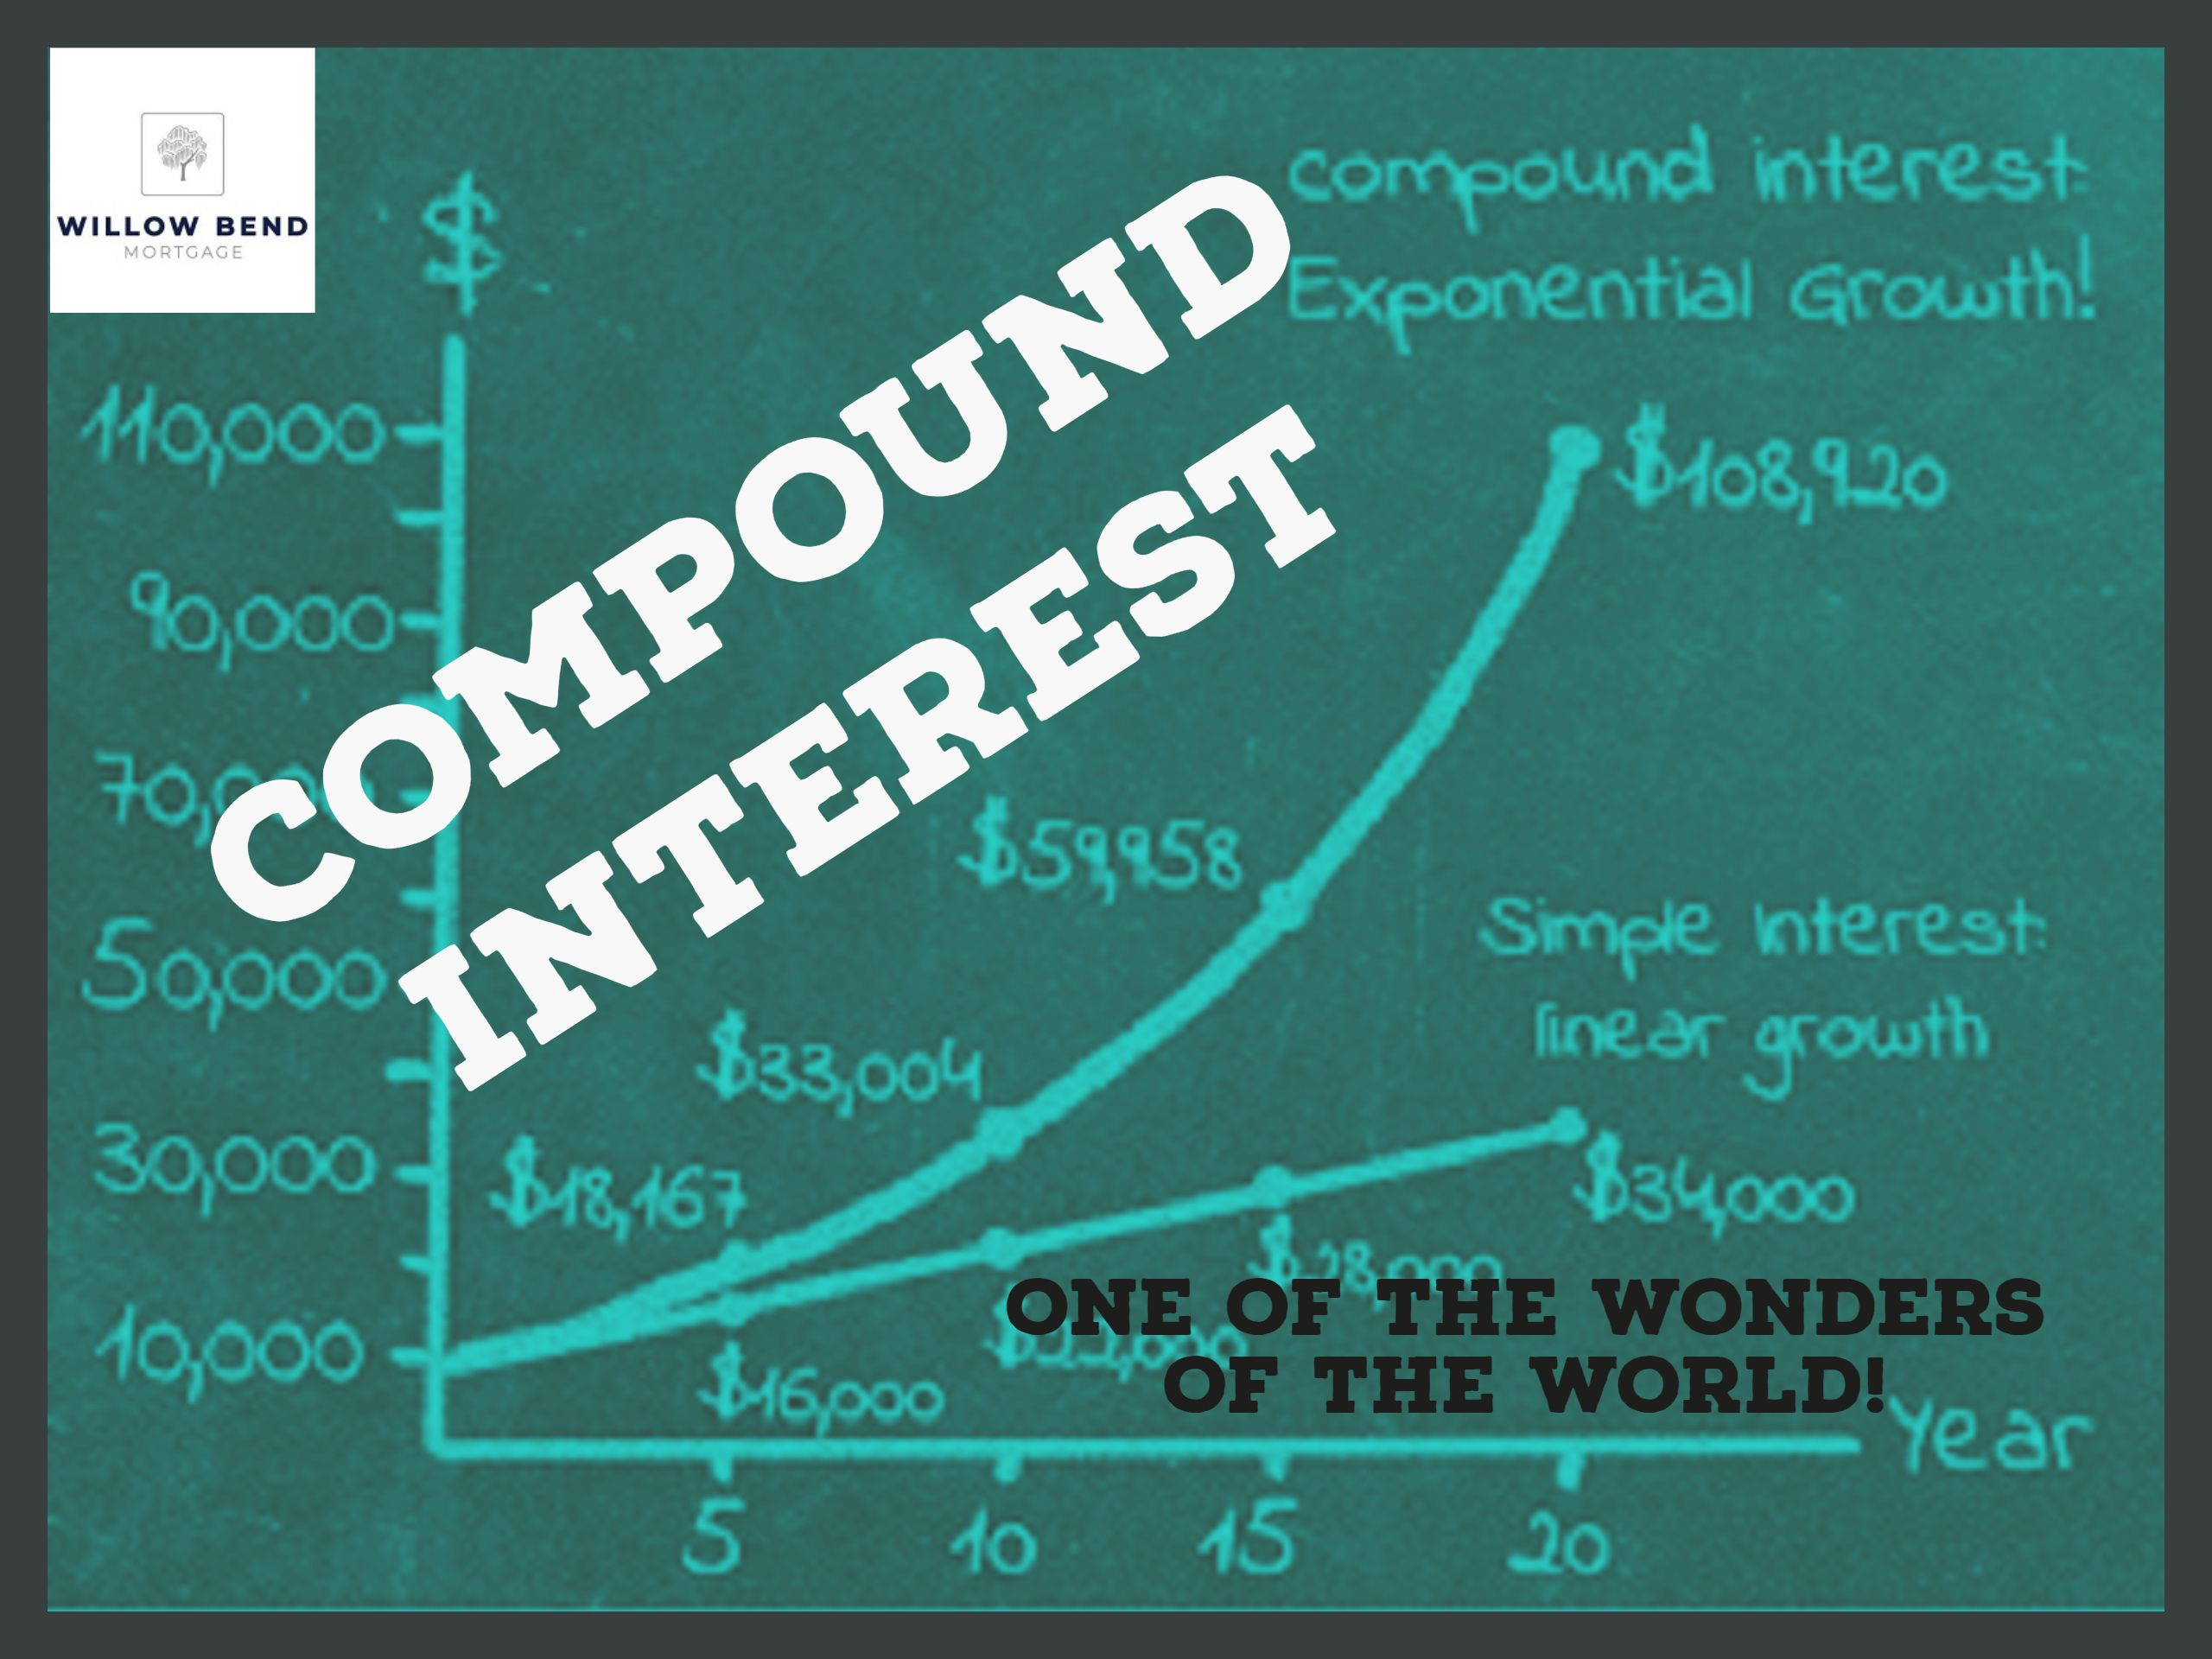 Compound Interest Has Often Been Dubbed As One Of The Wonders Of The World But What Does Compound Interest Simple Interest Compound Interest Mortgage Help